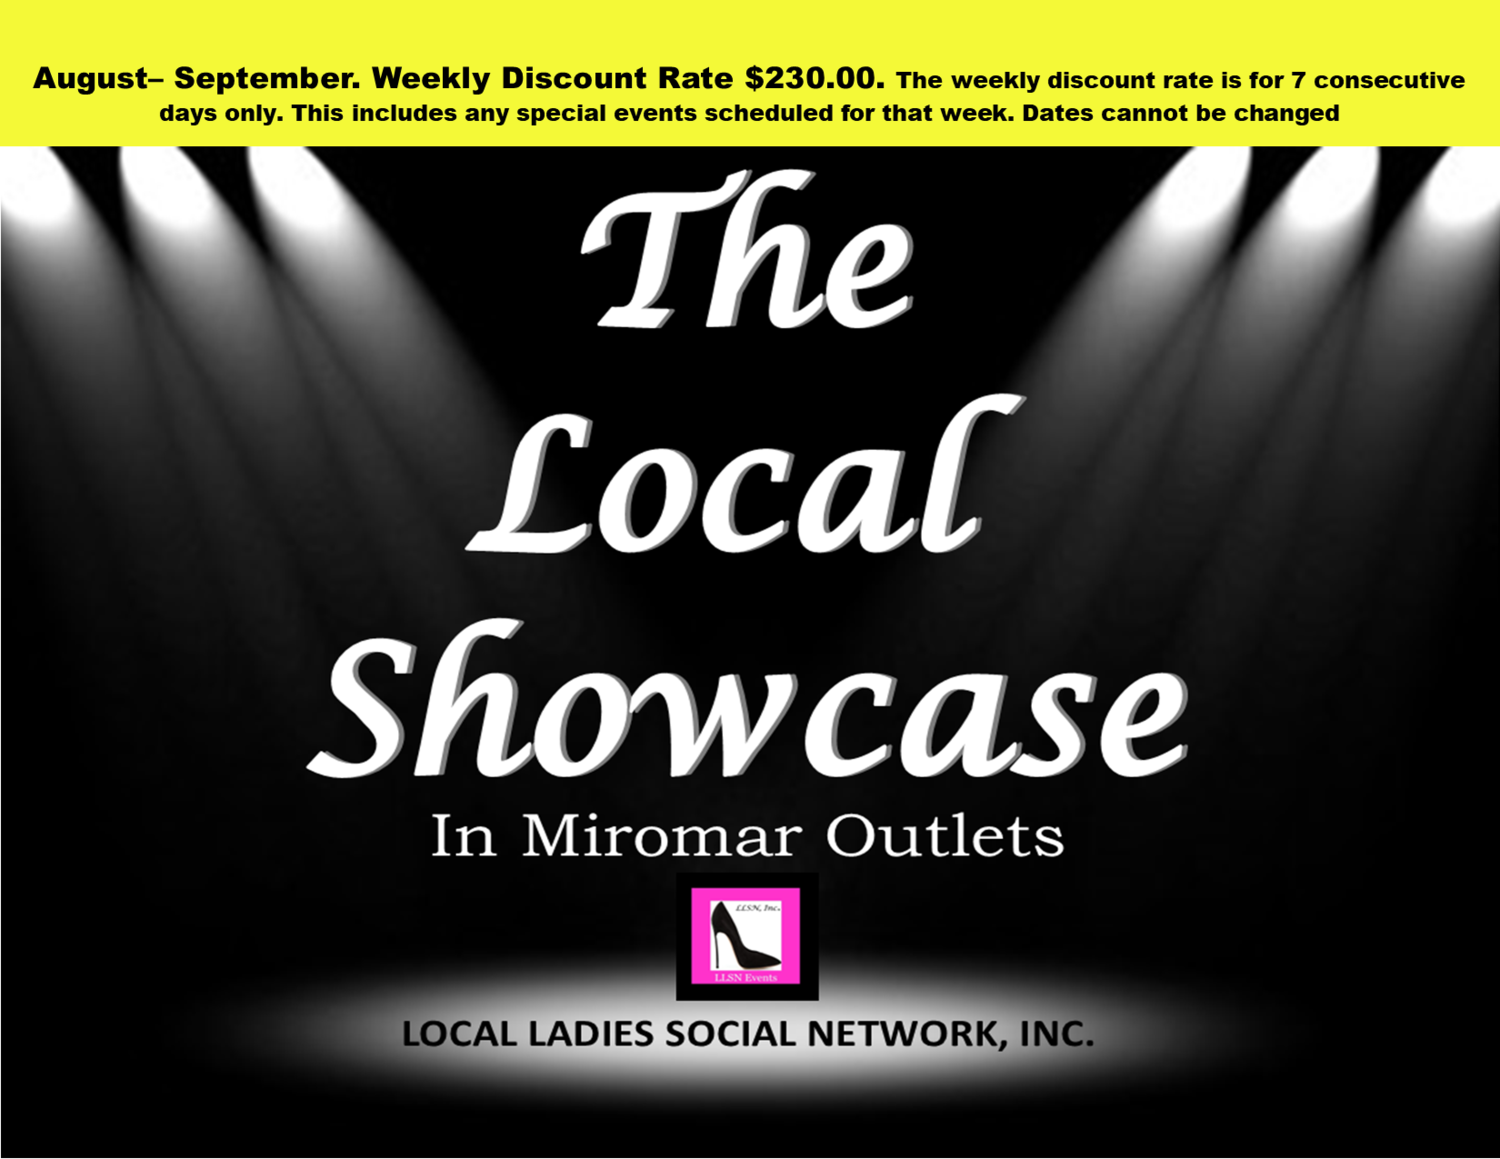 Weekly Discount-August - Sept. Only Approved Vendors may use this payment method for The Local Showcase in Miromar Outlets. Interested vendors please email: LLSN@comcast.net for approval.